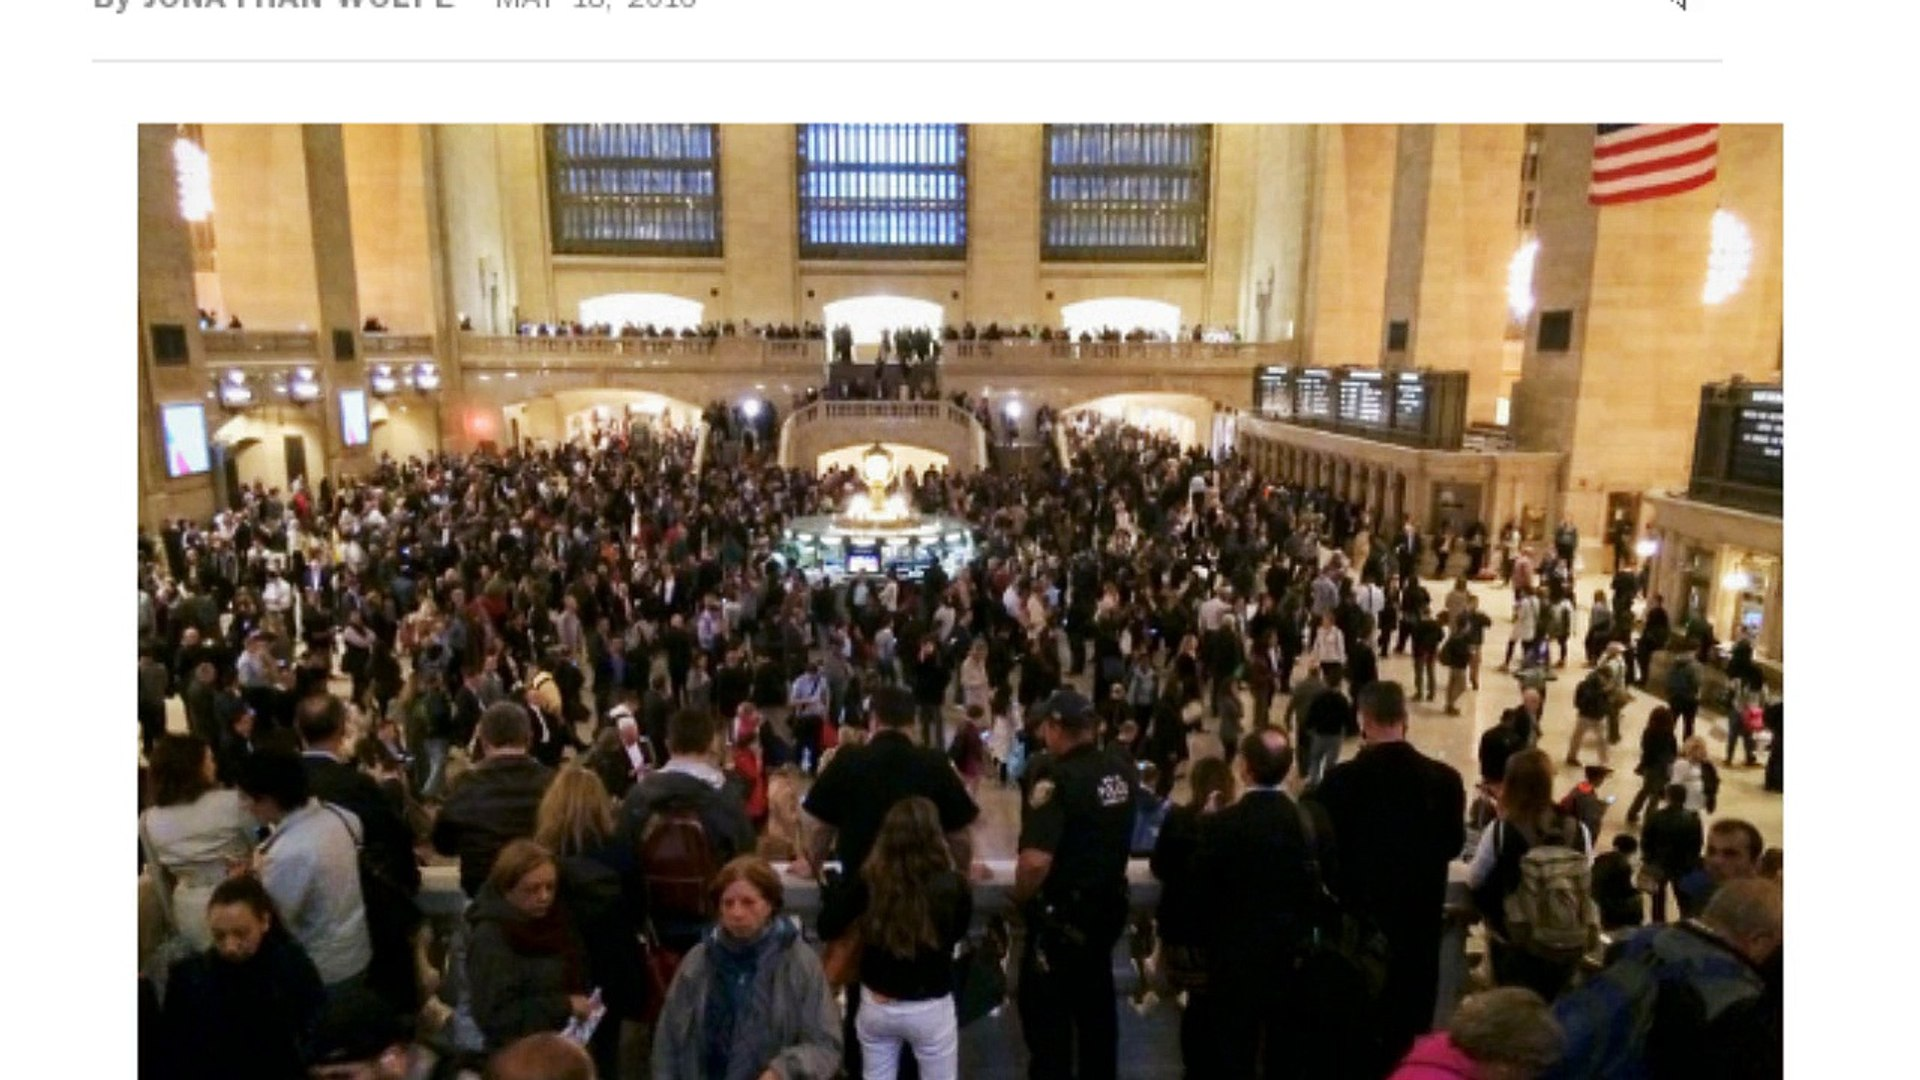 [Newsa] New York Today: Fire Snarls Metro-North Service at Grand Central